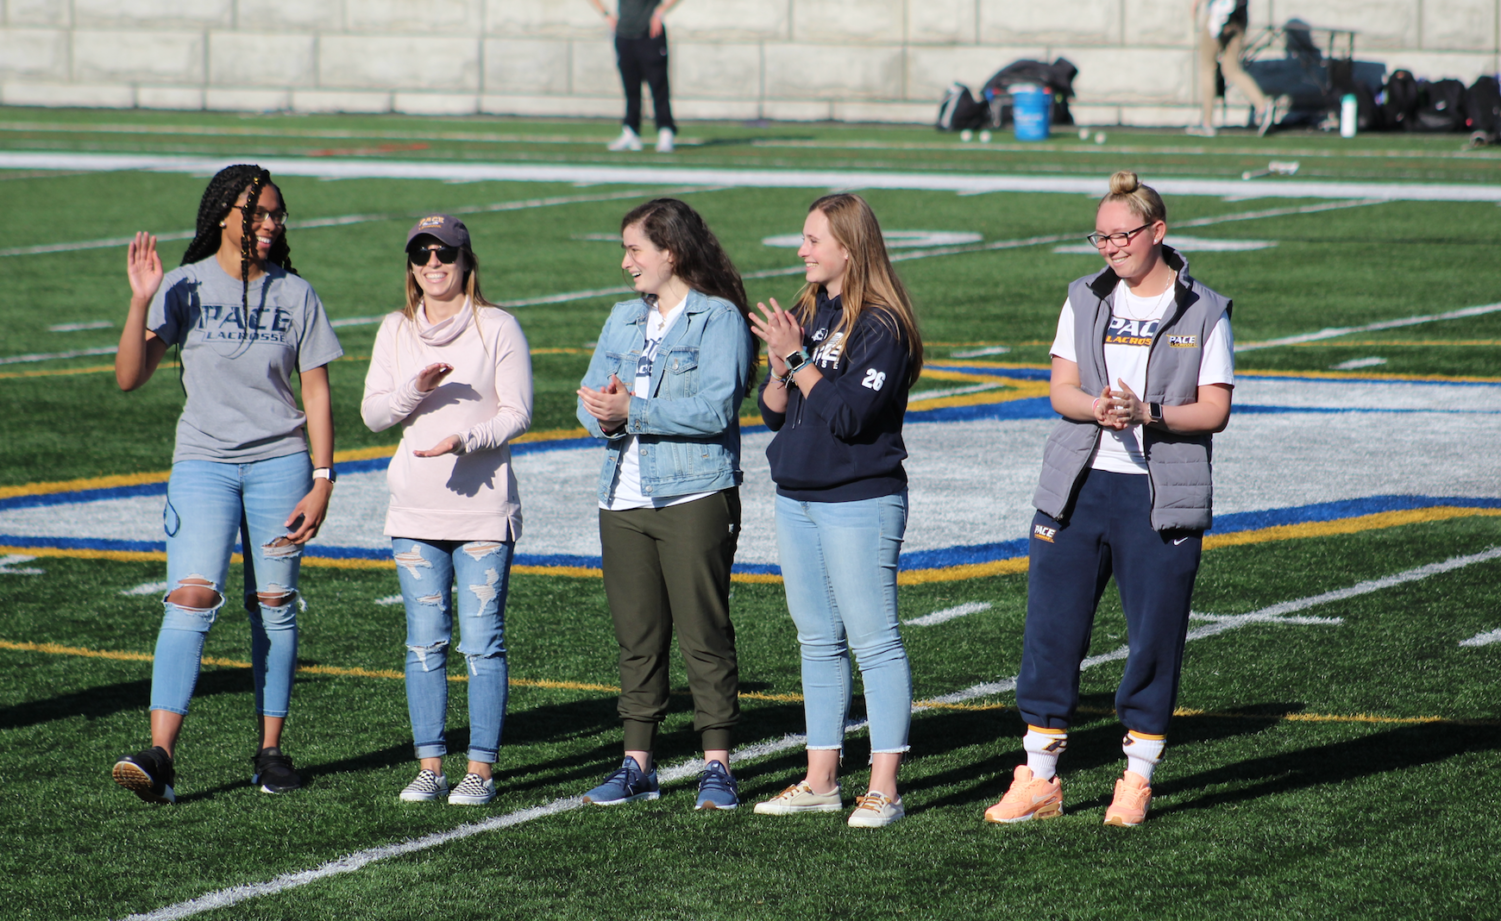 Pace women's lacrosse 2018 alumni receive recognition at halftime for their historic achievements